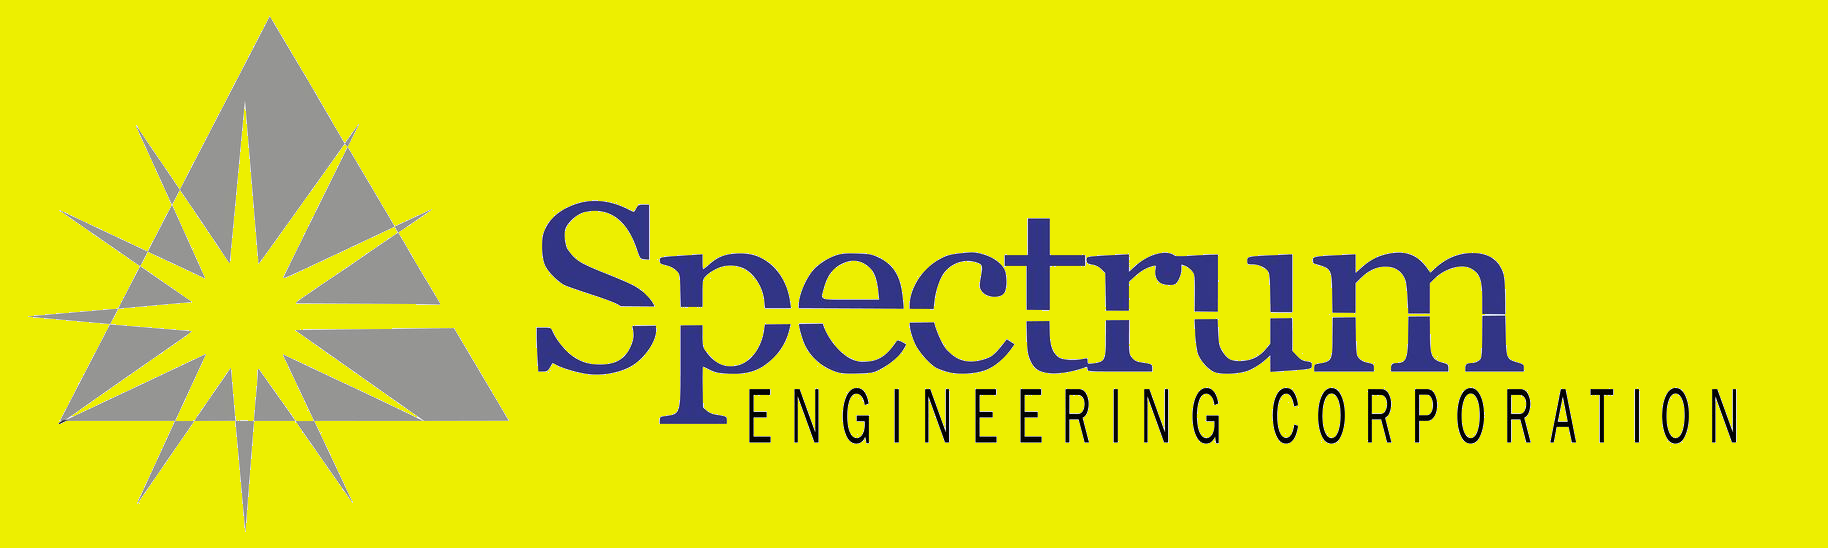 Spectrum Engineering logo